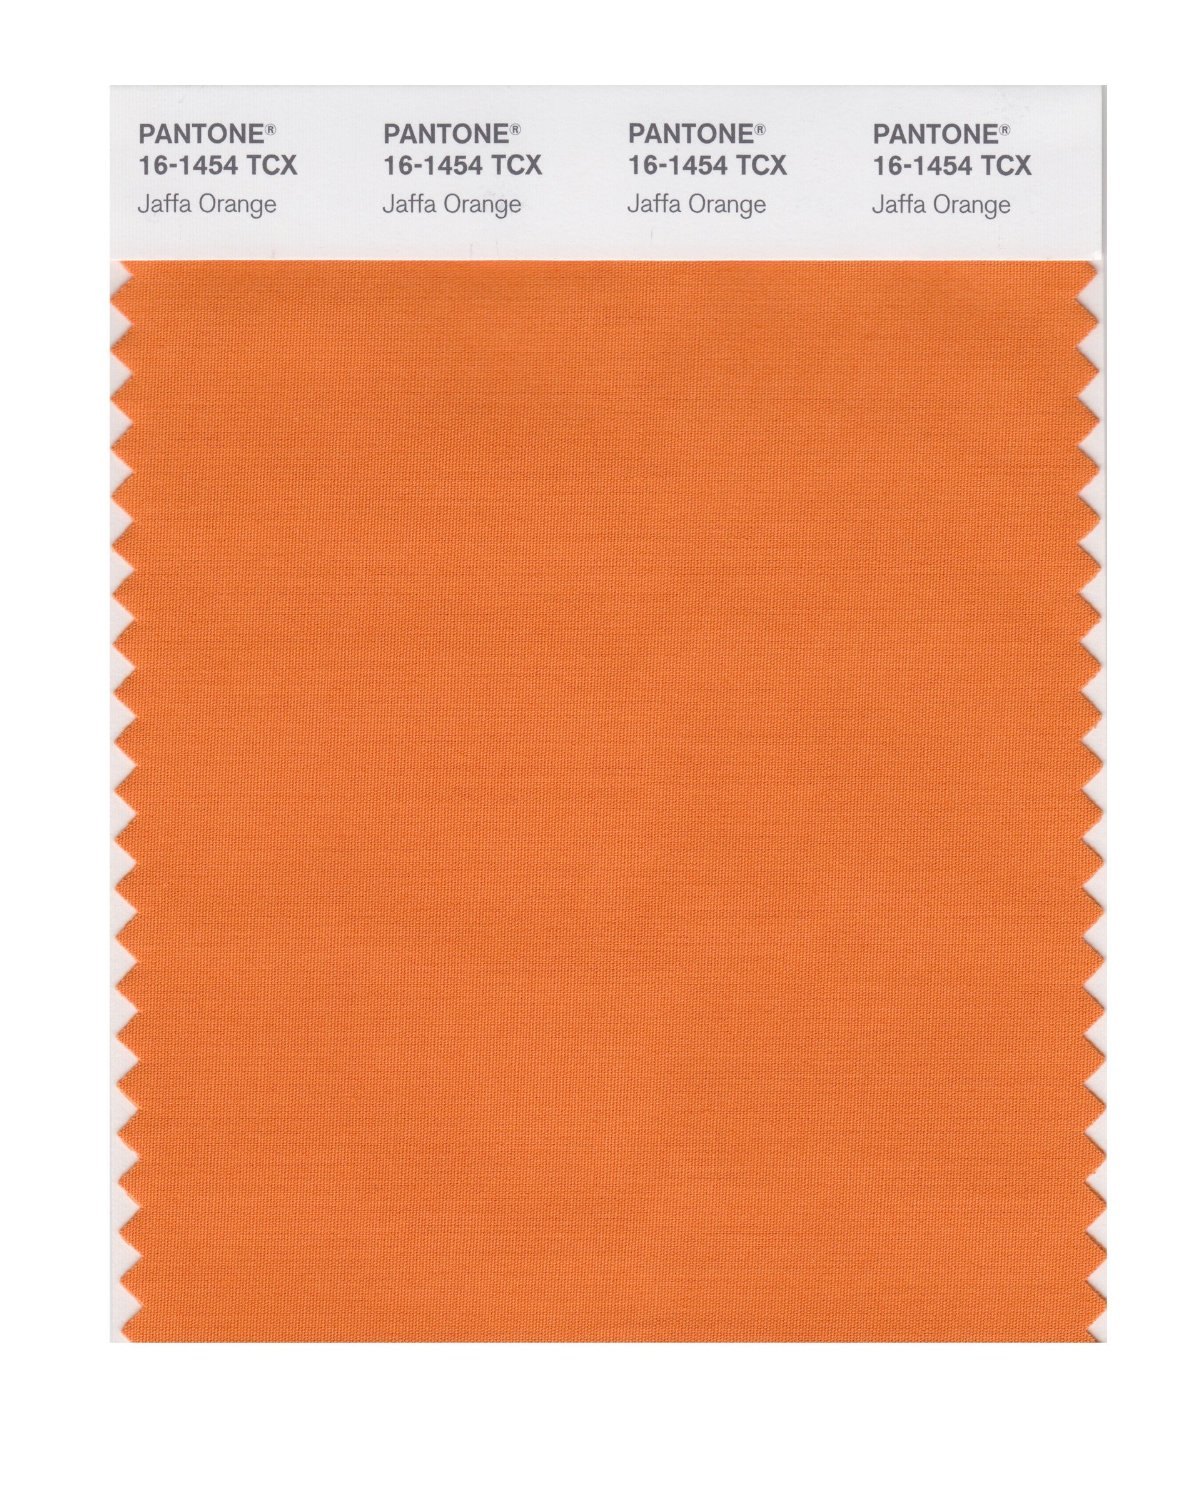 Pantone Smart Swatch 16-1454 Jaffa Orange